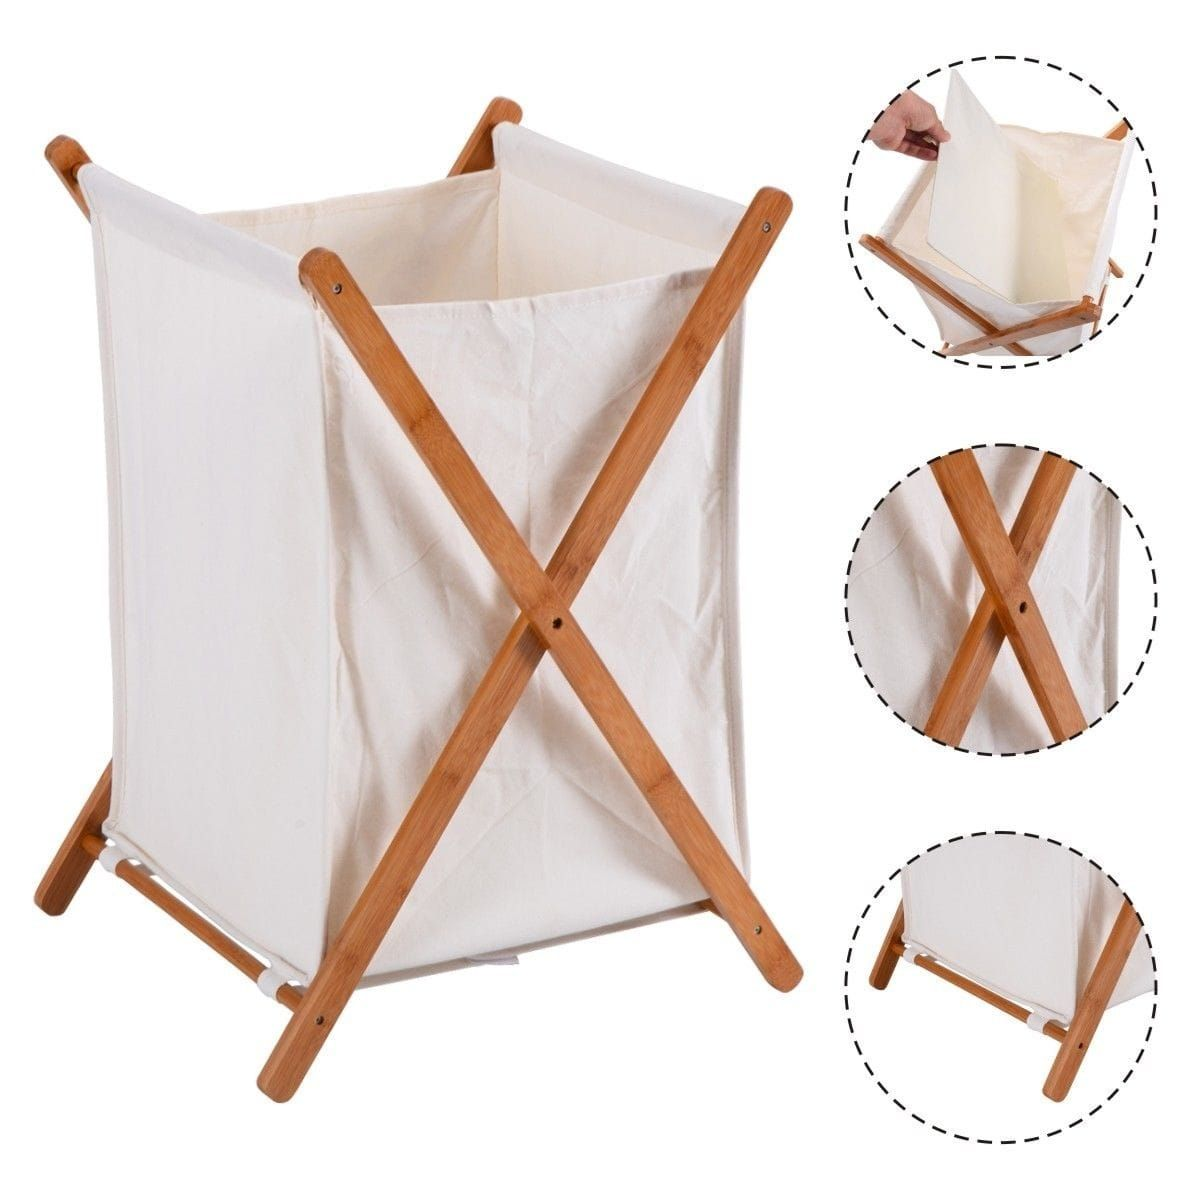 Costway Household Folding Bamboo X Frame Laundry Hamper Clothes